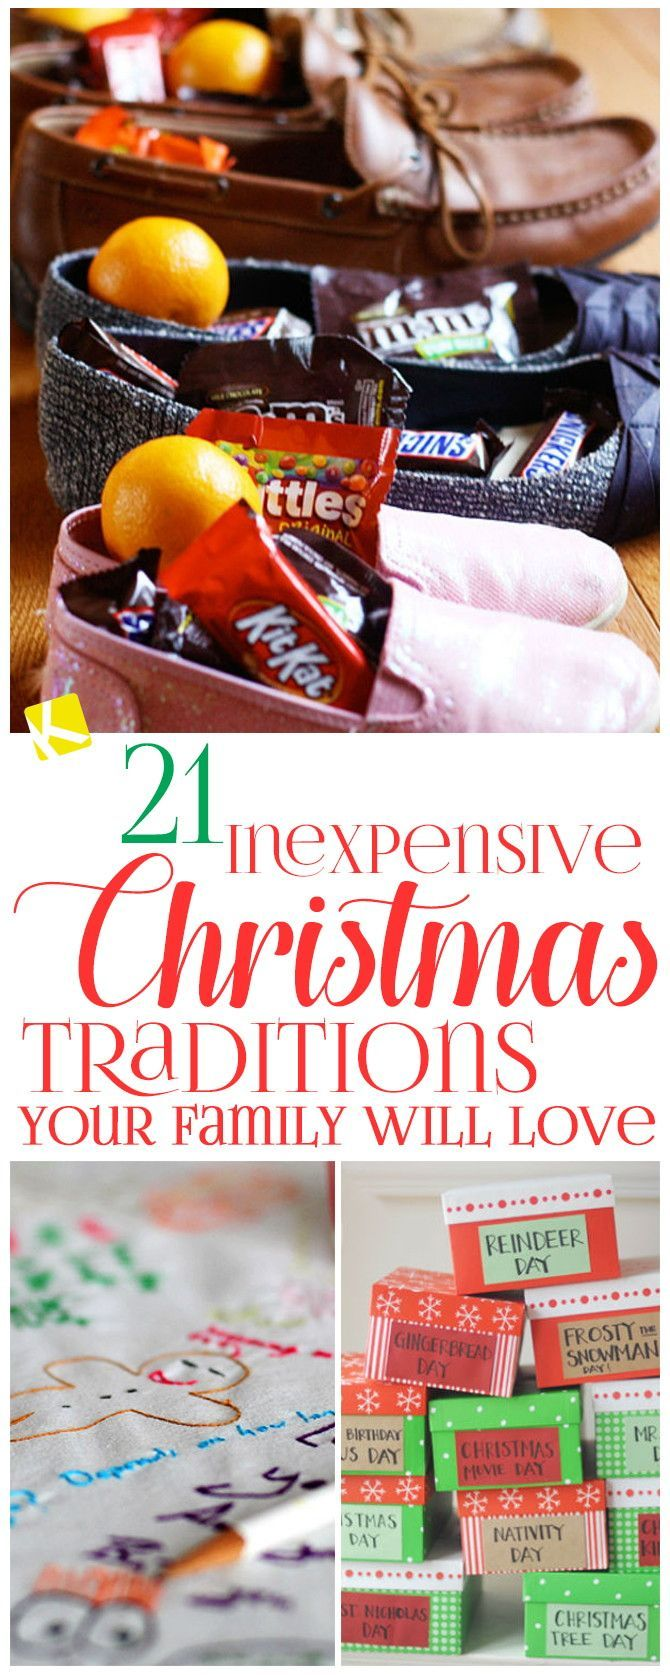 Starting a tradition can bring a family even closer together. Here are 21 traditions that will cost you very little or nothing at all, but...